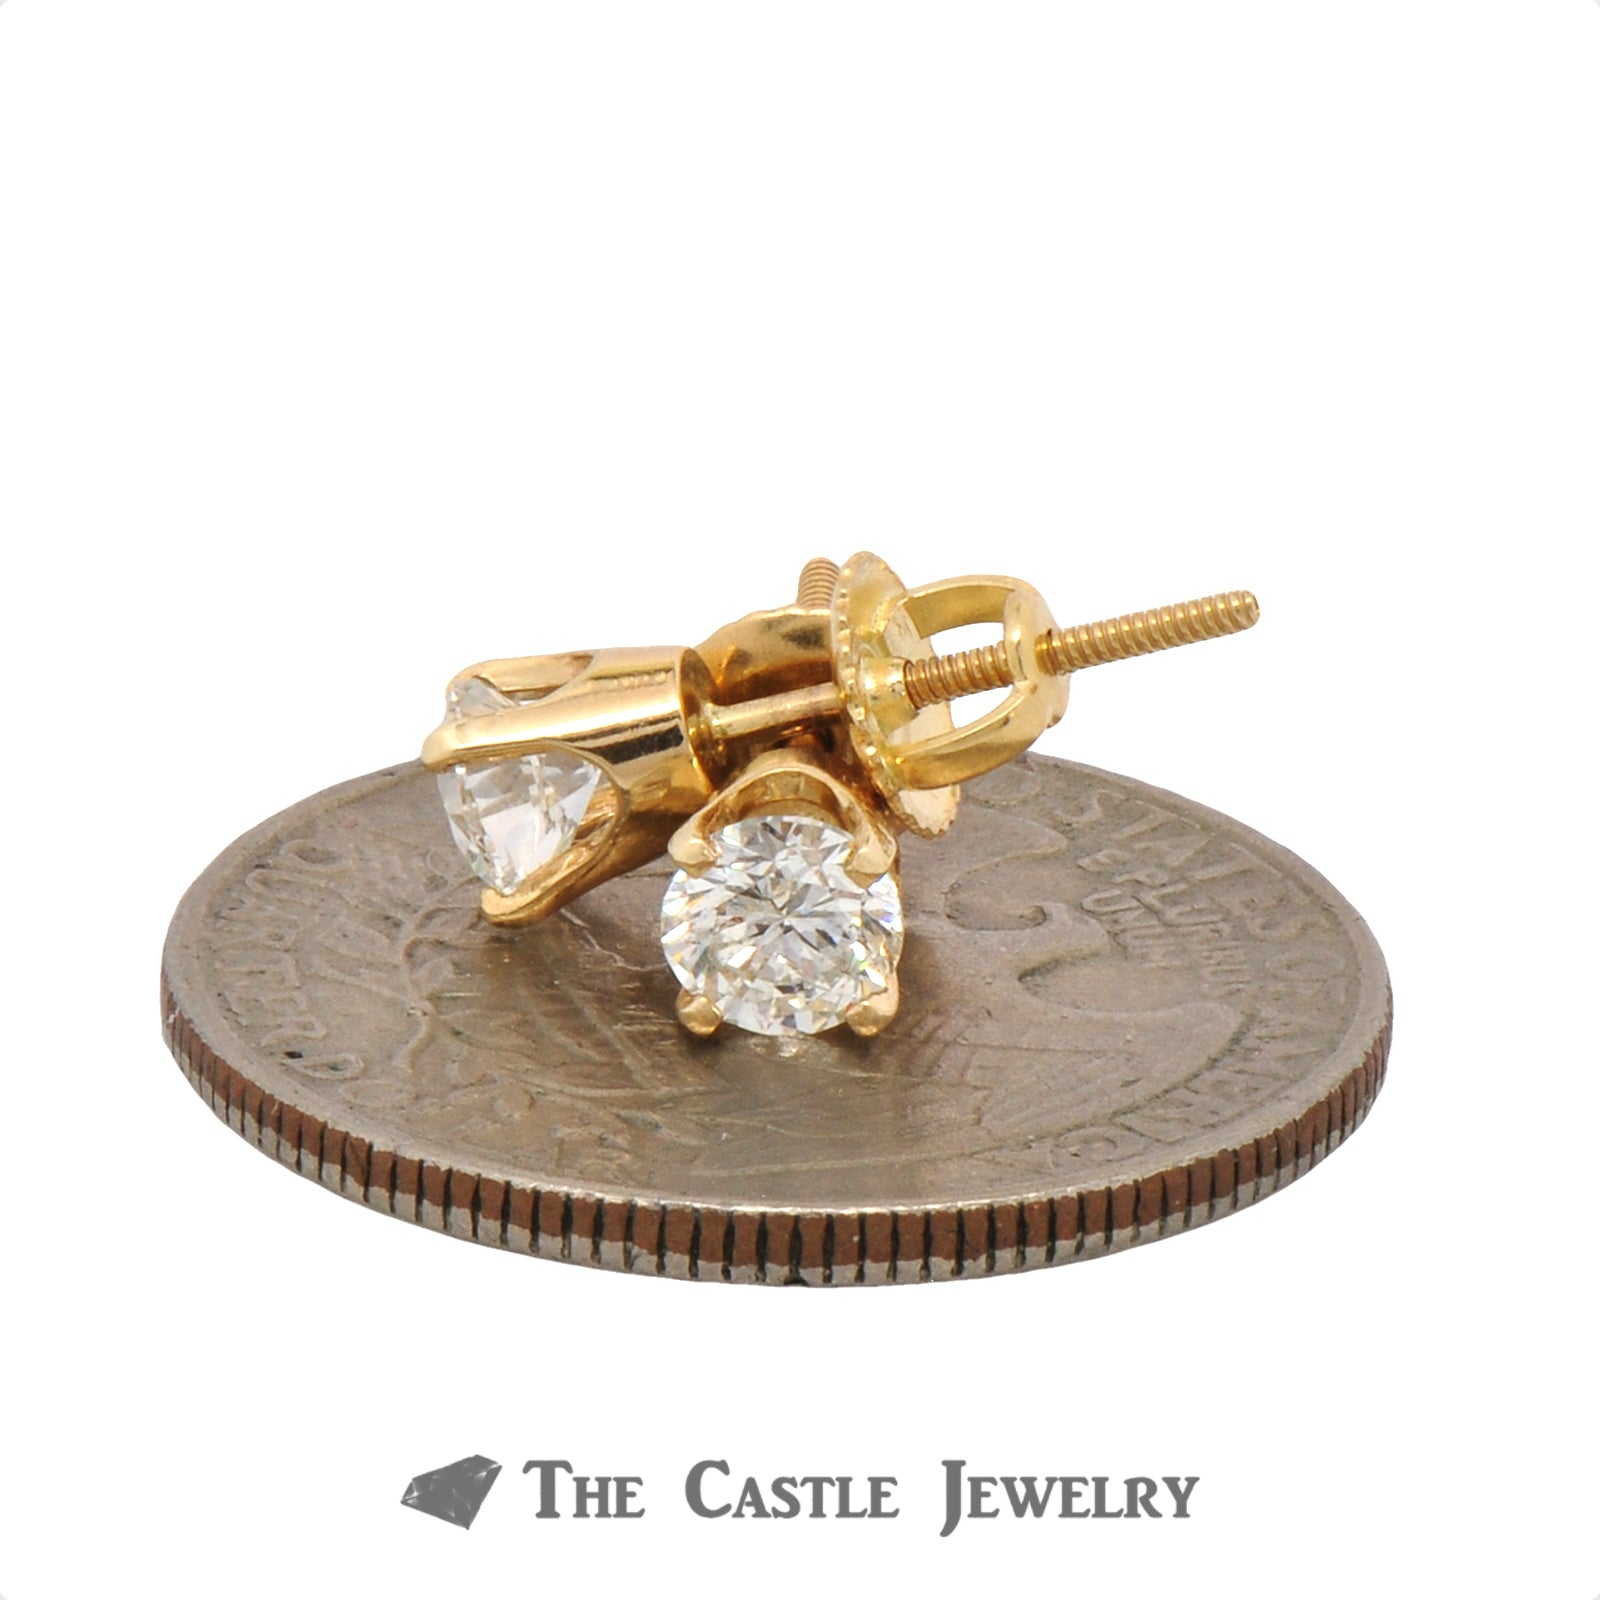 .75cttw Round Brilliant Cut Diamond Studs in 14k Yellow Gold-2